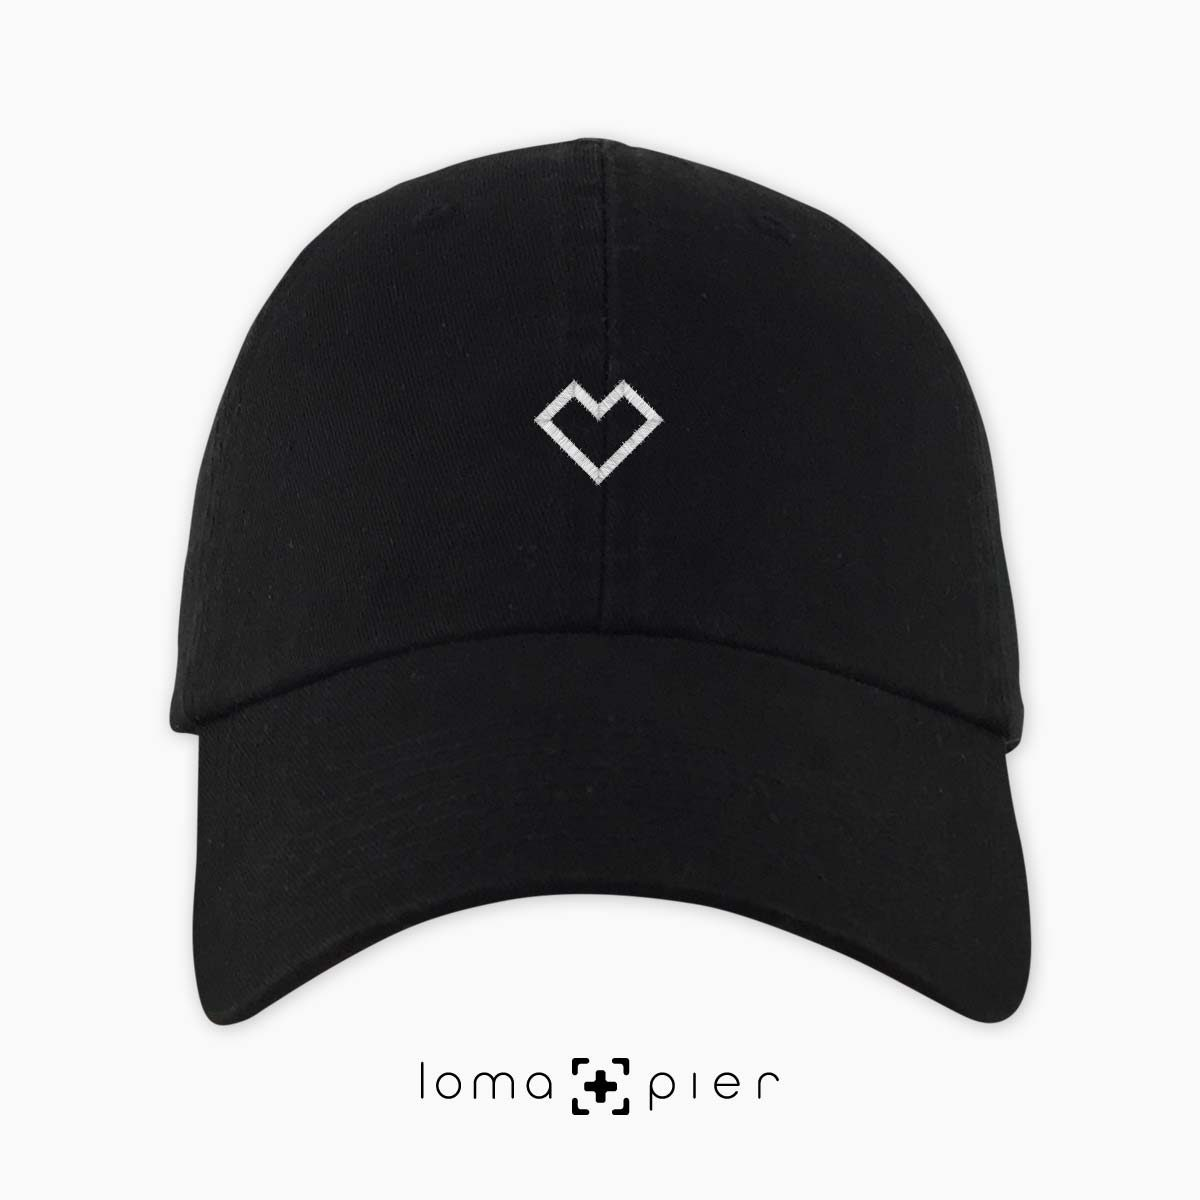 EDGY HEART icon embroidered on a black unstructured dad hat with white thread by loma+pier hat store made in the USA